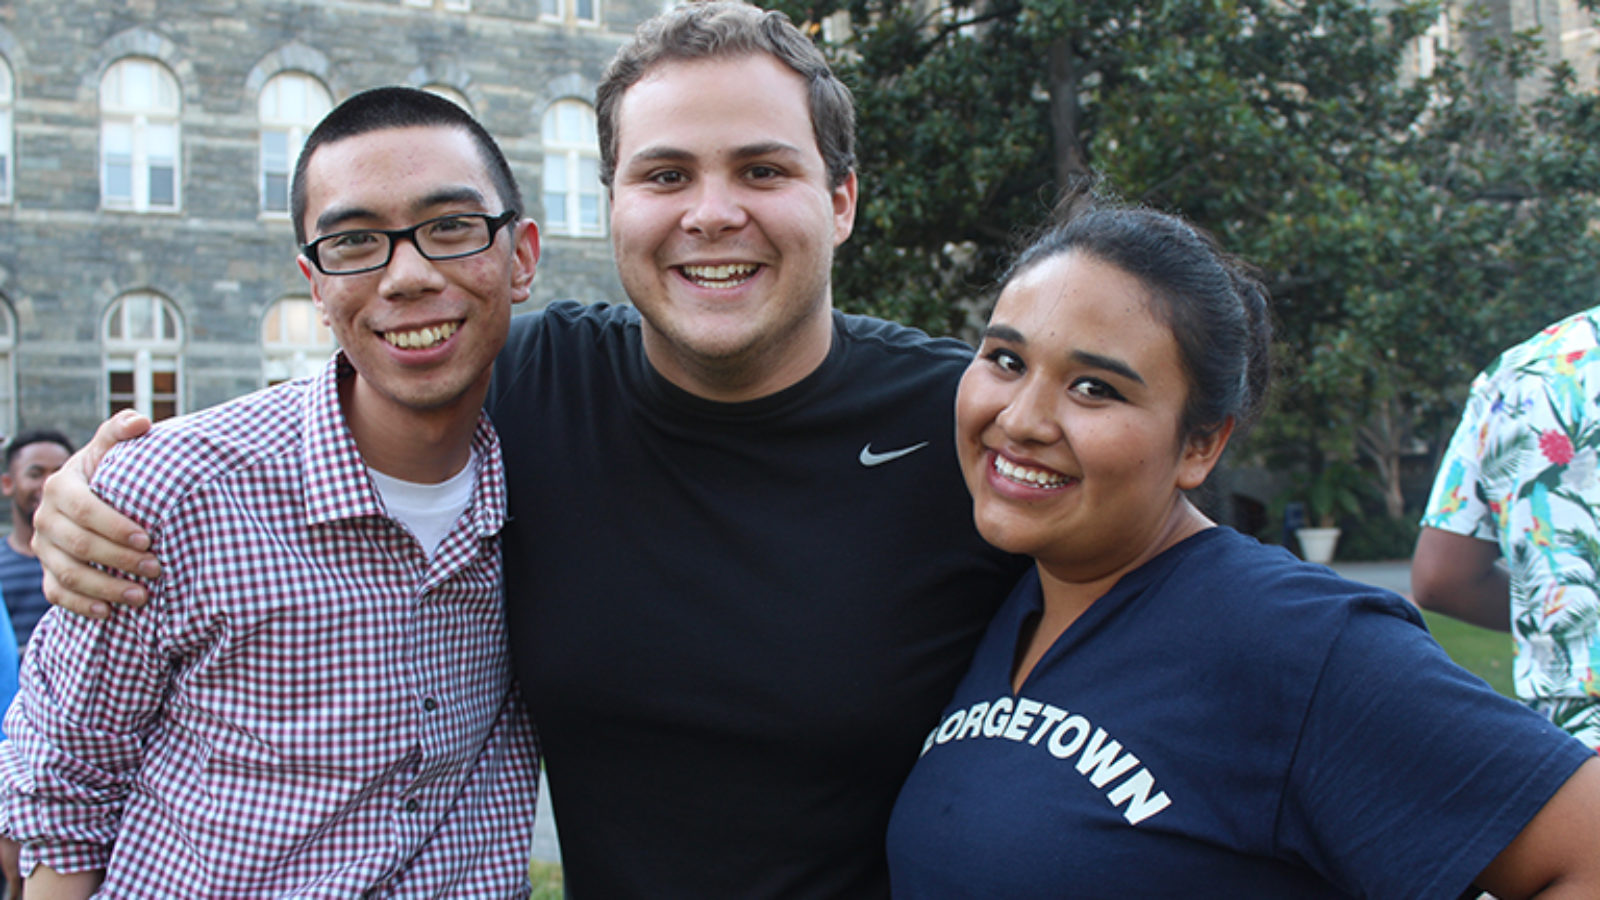 Three Georgetown students smile for the camera.